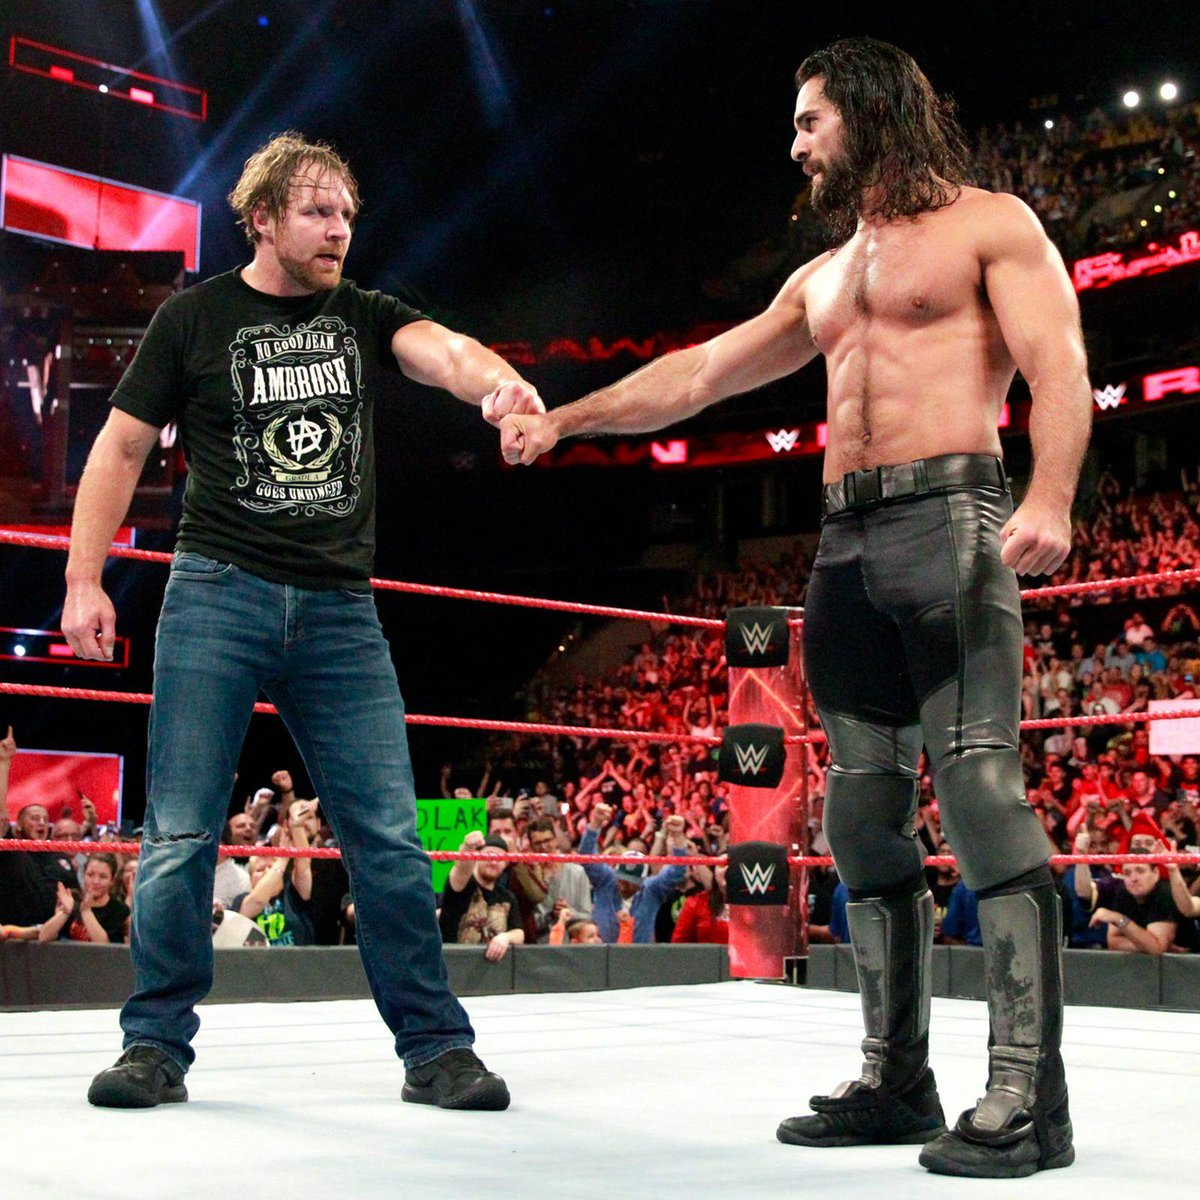 Photo from Dean&#39;s WWE Facebook Page:  One more time, Seth Rollins? #DeanAmbrose #Raw <br>http://pic.twitter.com/ktA1dZR21S